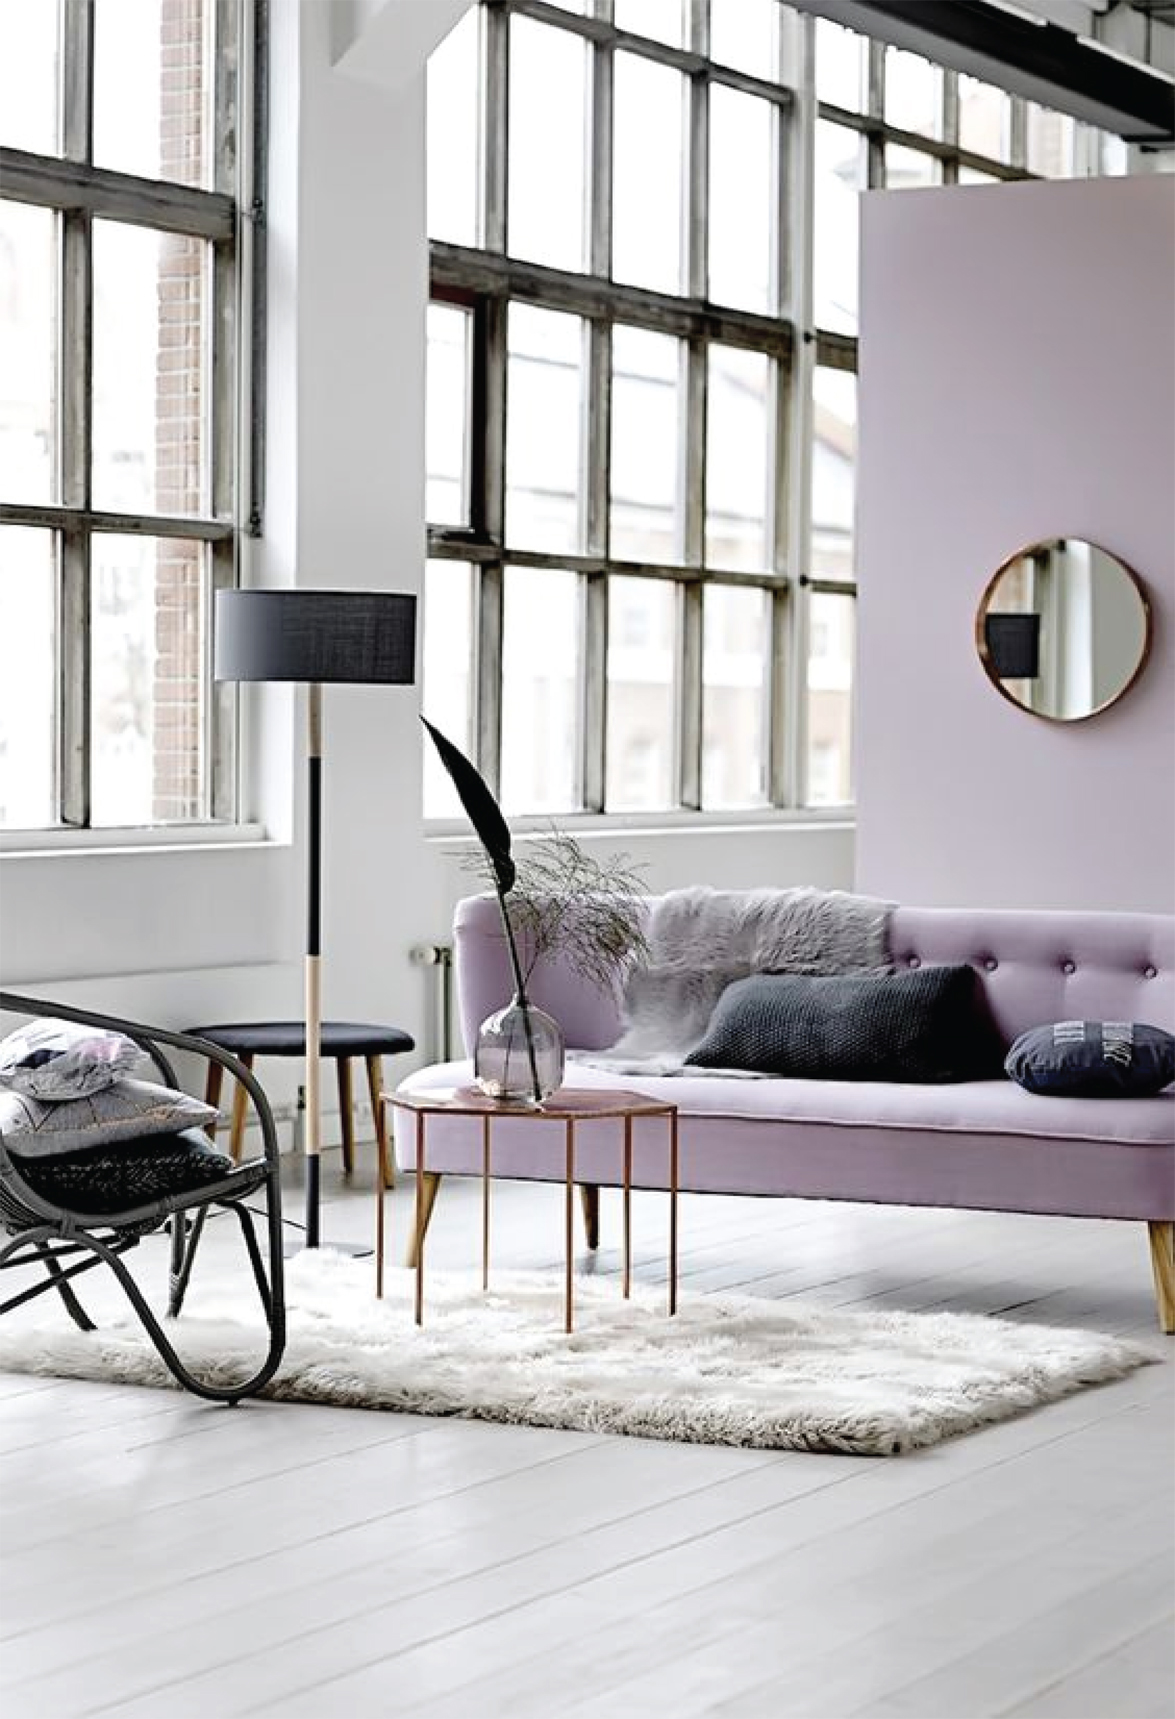 Lilac Interior Inspiration | Akin Design Studio Blog